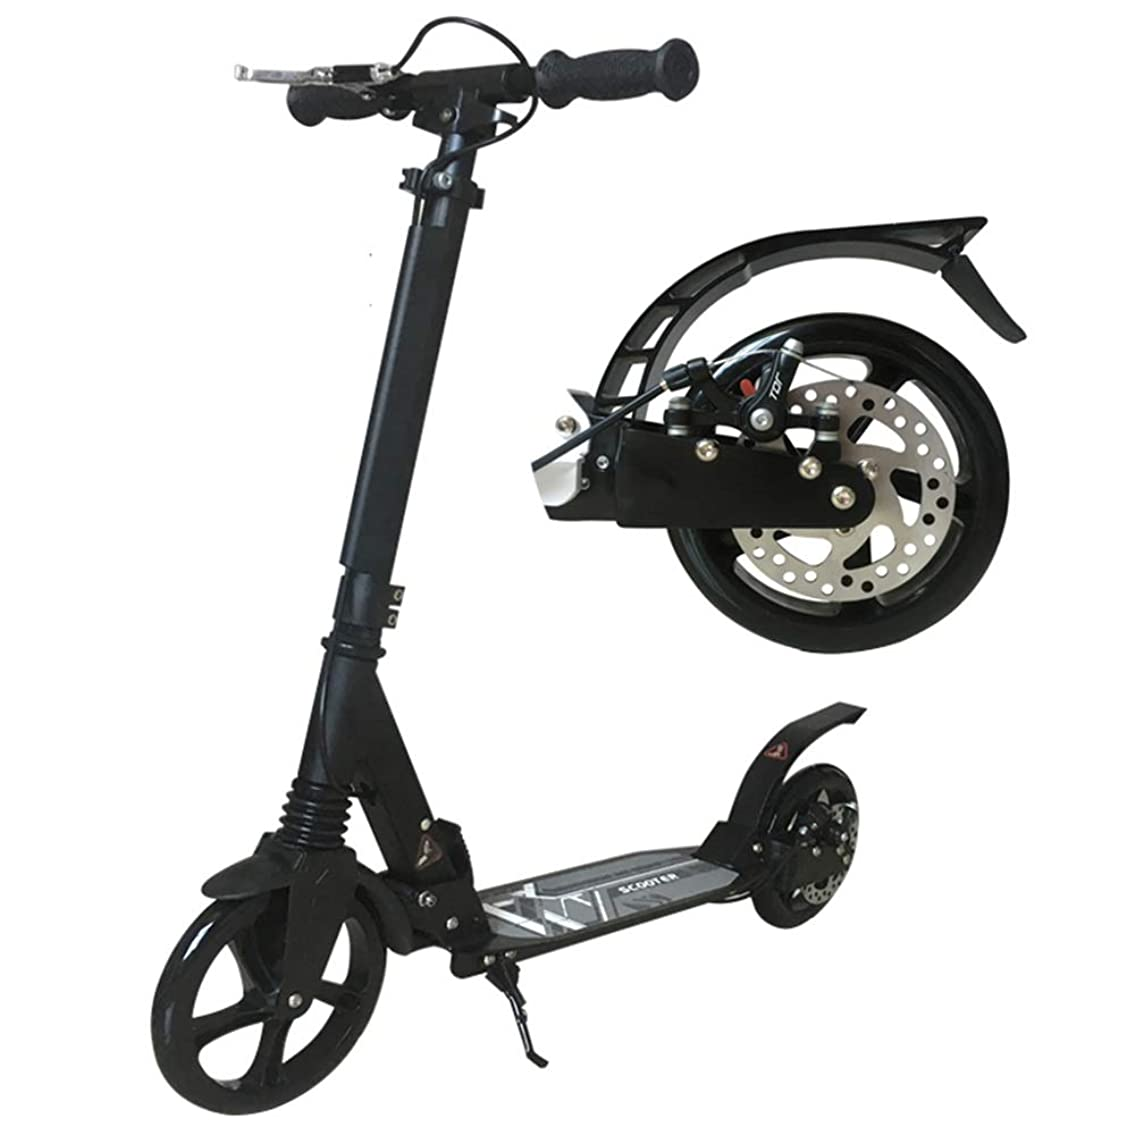 LXLA - Kick Scooter for Adult Kids Teens - Big Wheels Kick Scooter with Disc Hand Brake, Folding Dual Suspension, Adjustable Height - Supports 330lbs (Color : Black)